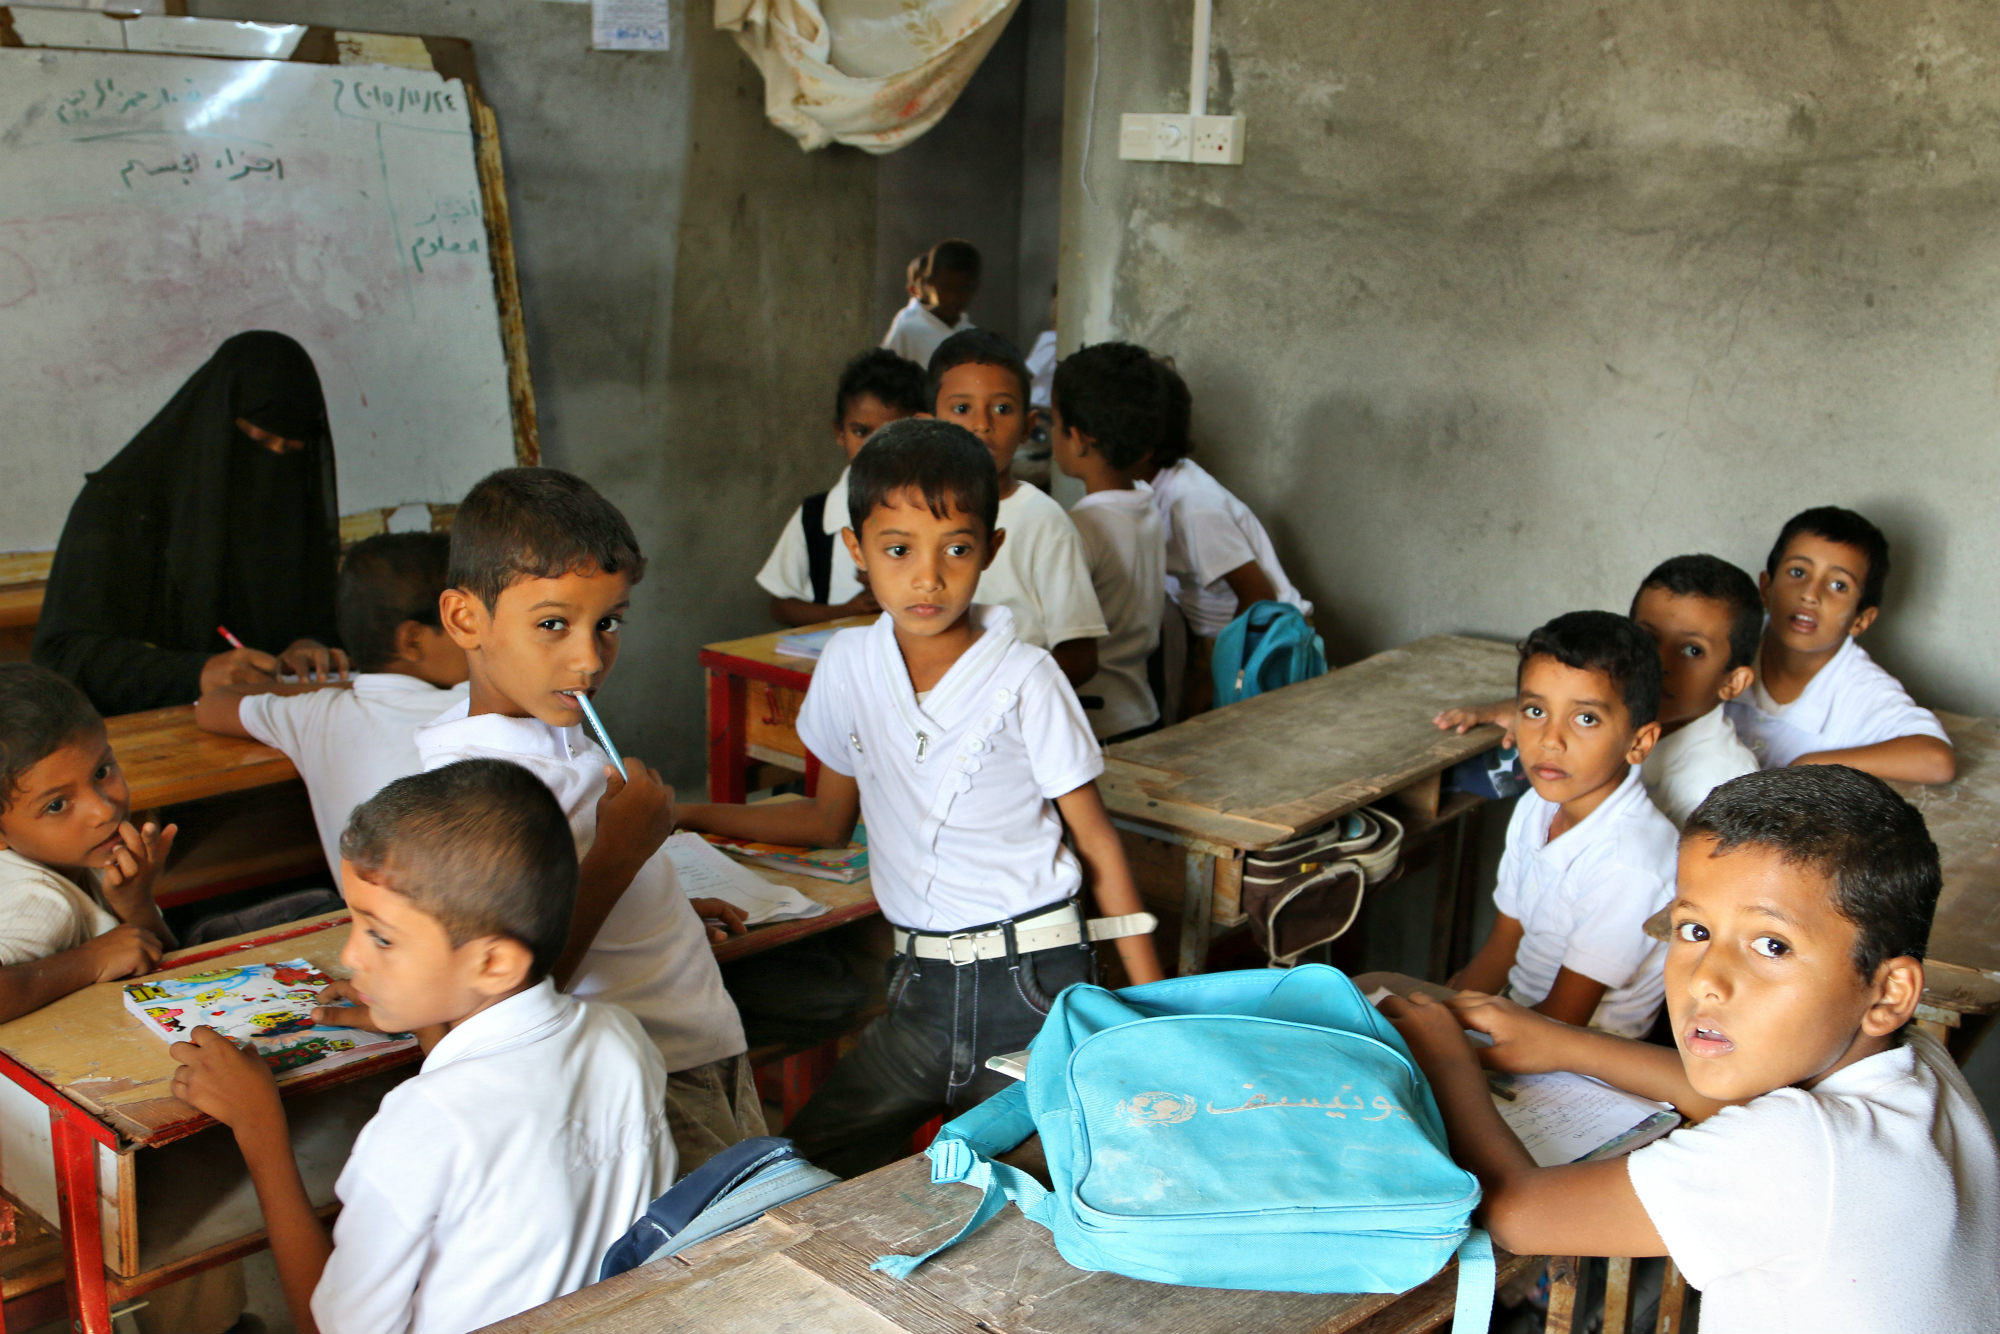 A group of children in a classroom.